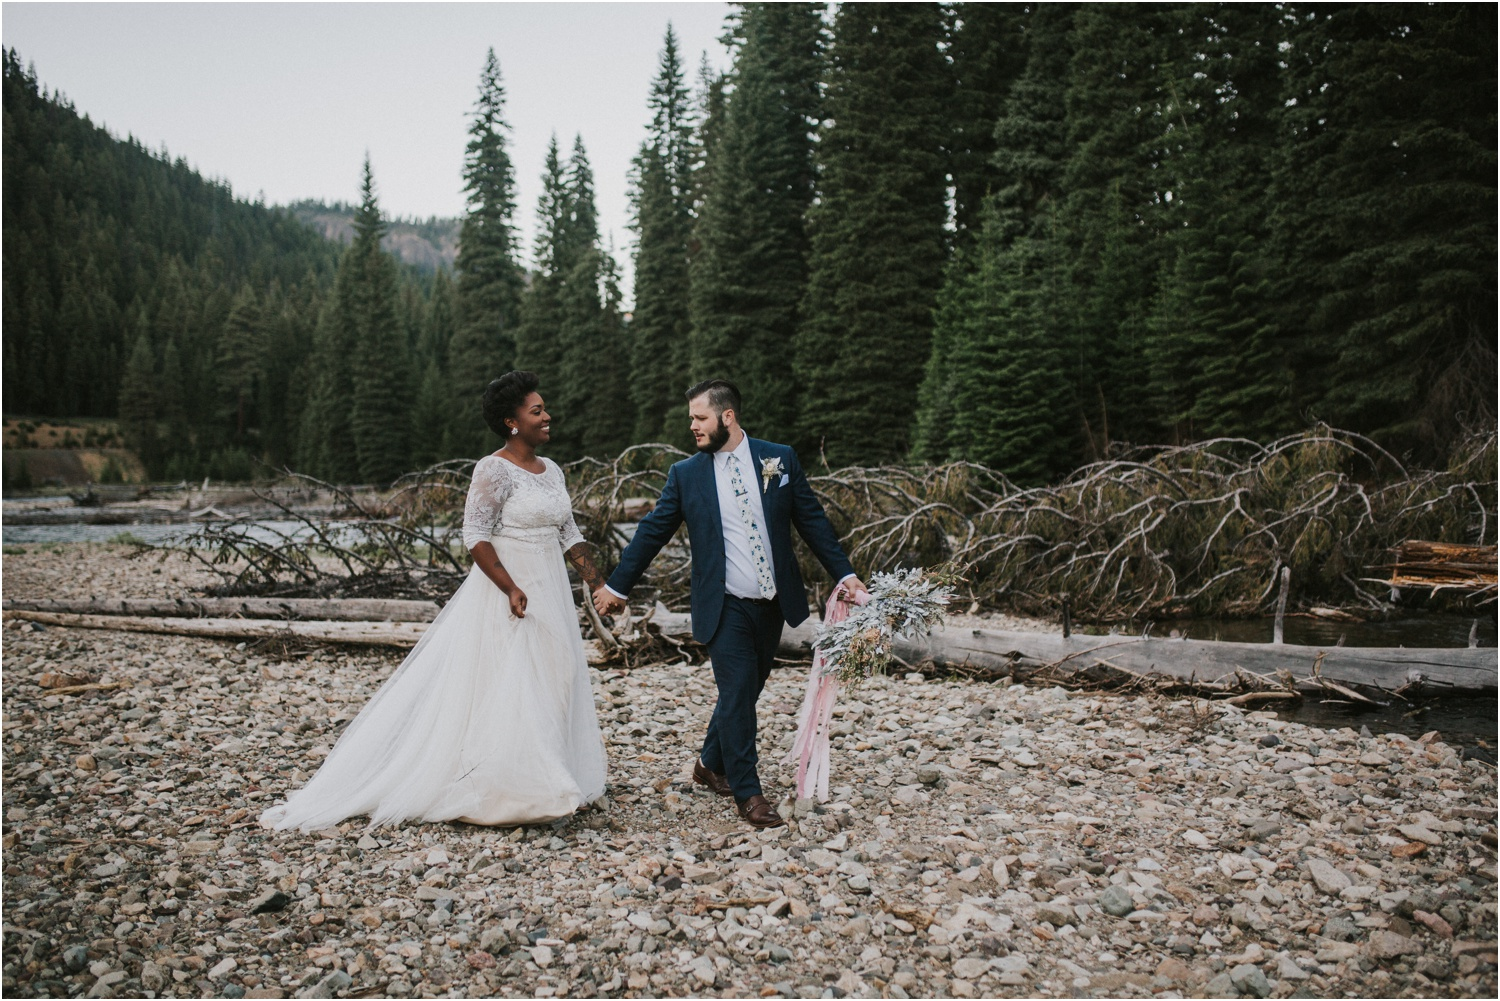 lovestoriesco-amber-phinisee-seattle-mount-rainier-elopement_0070.jpg